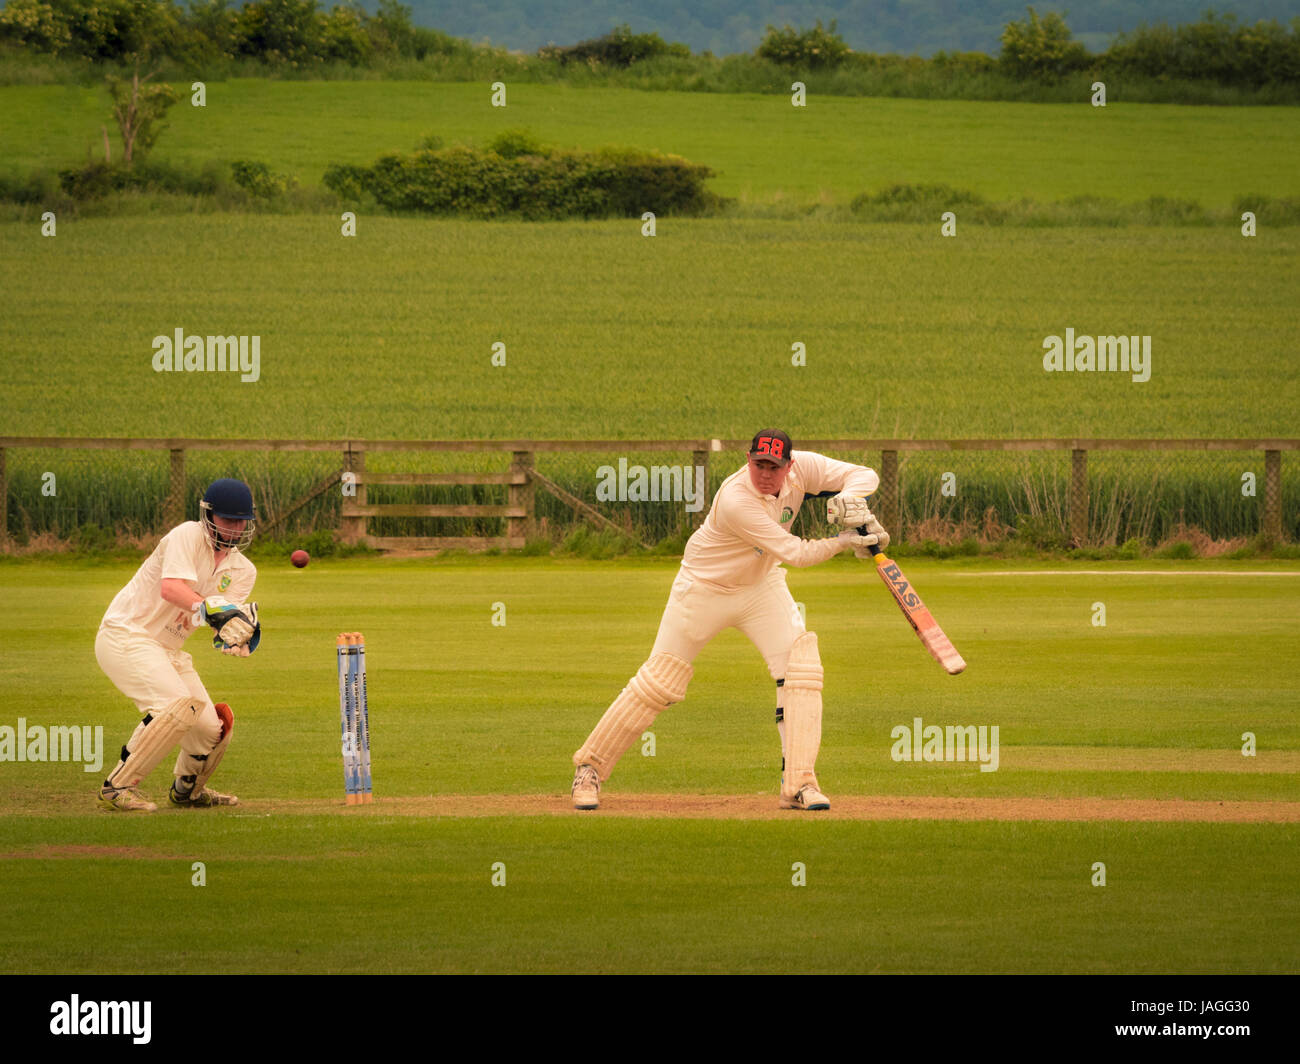 Game of Cricket being played in typical British village. - Stock Image